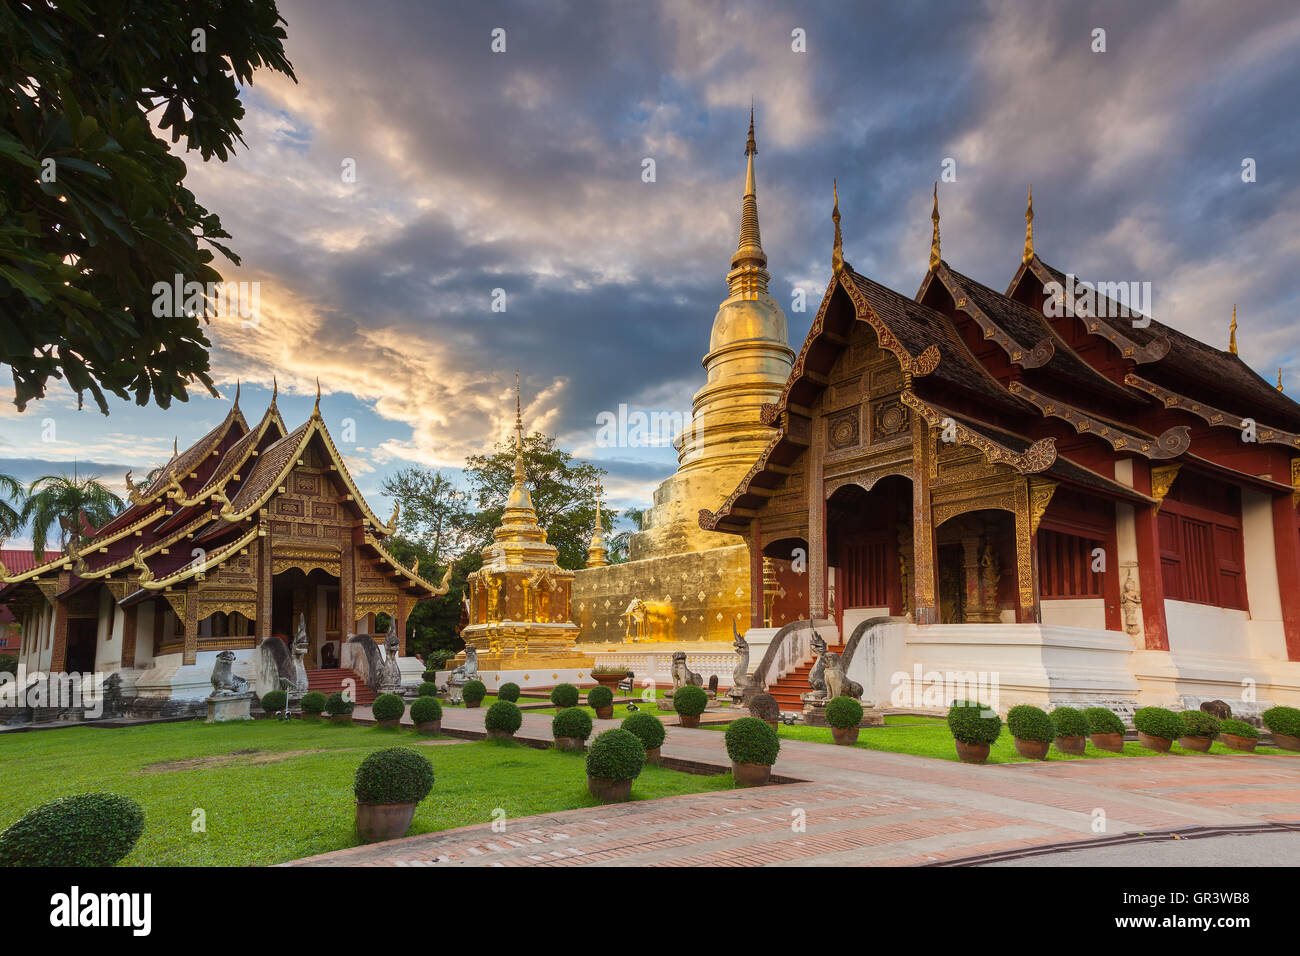 Wat Phra Singh at sunset, the most revered temple in Chiang Mai, Thailand. - Stock Image